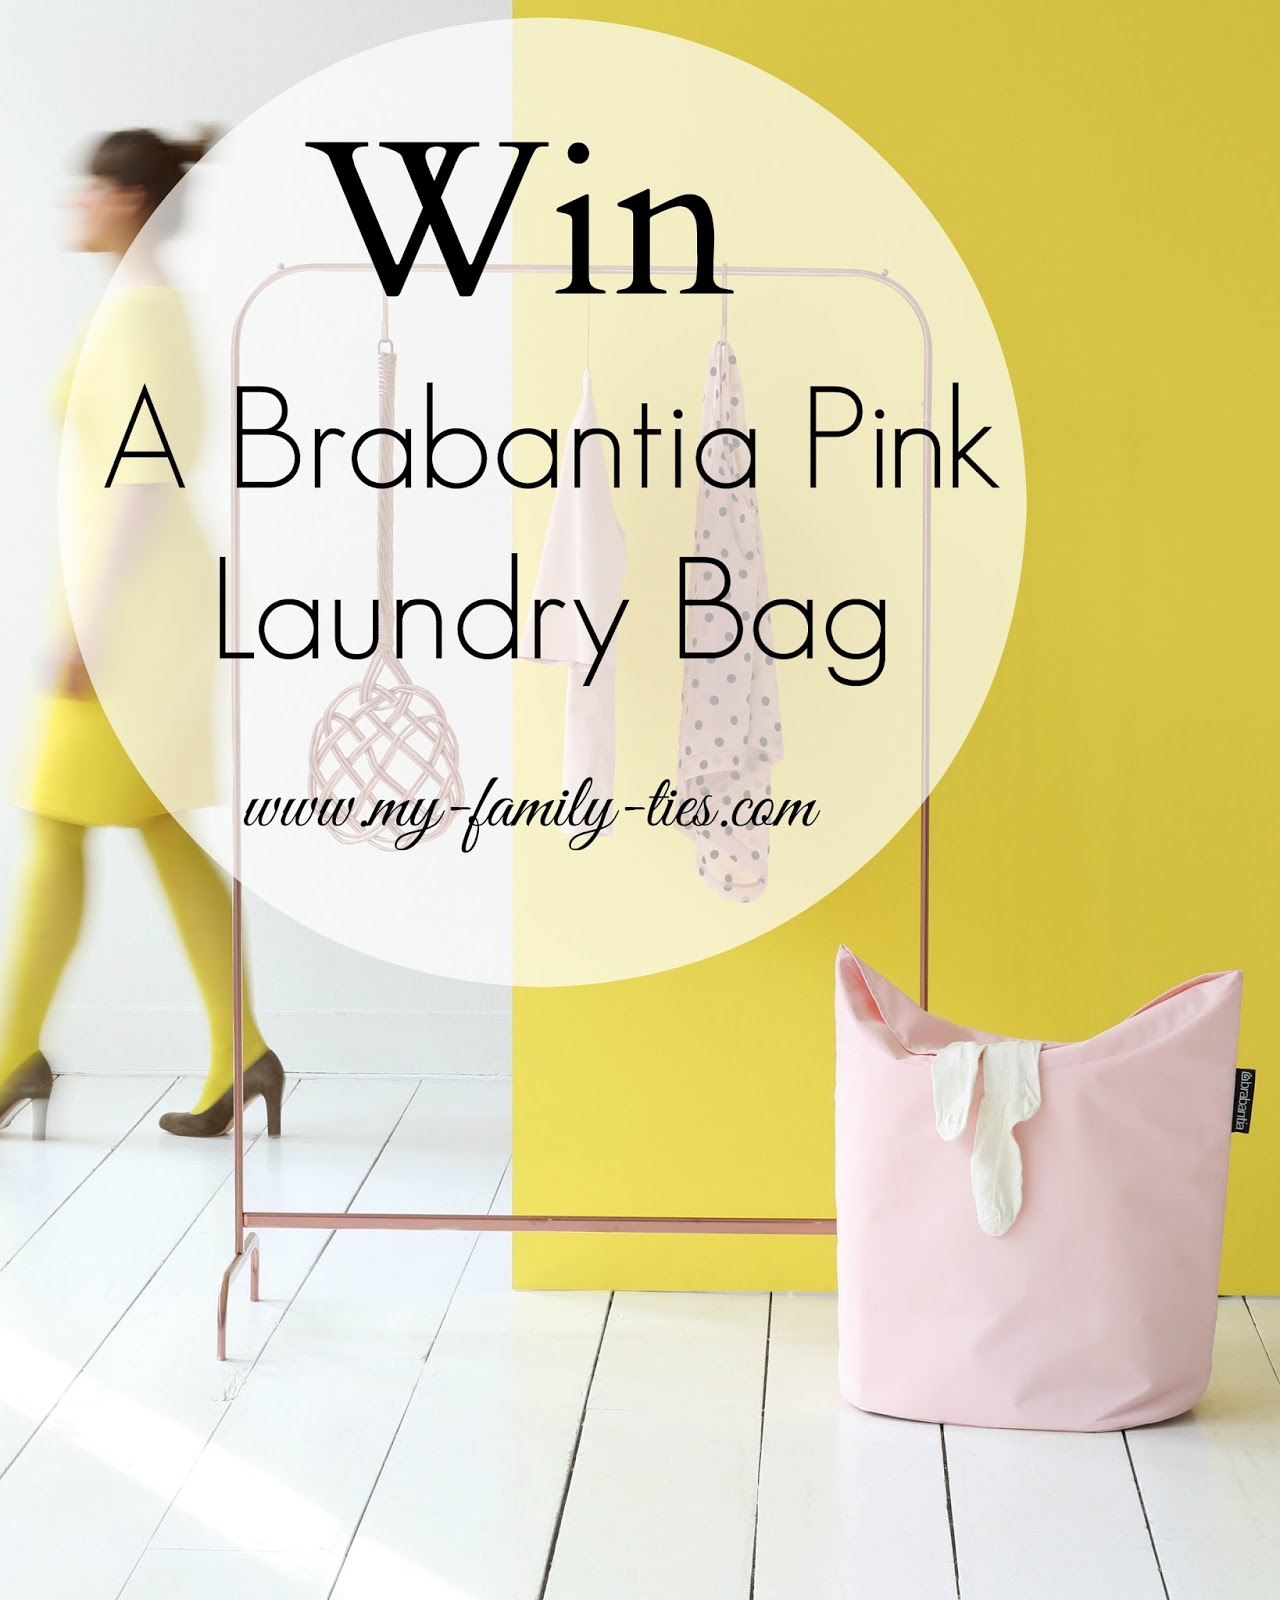 Win A Brabantia Pastel Pink Laundry Bag With My Family Ties Blog www.my-family-ties.com